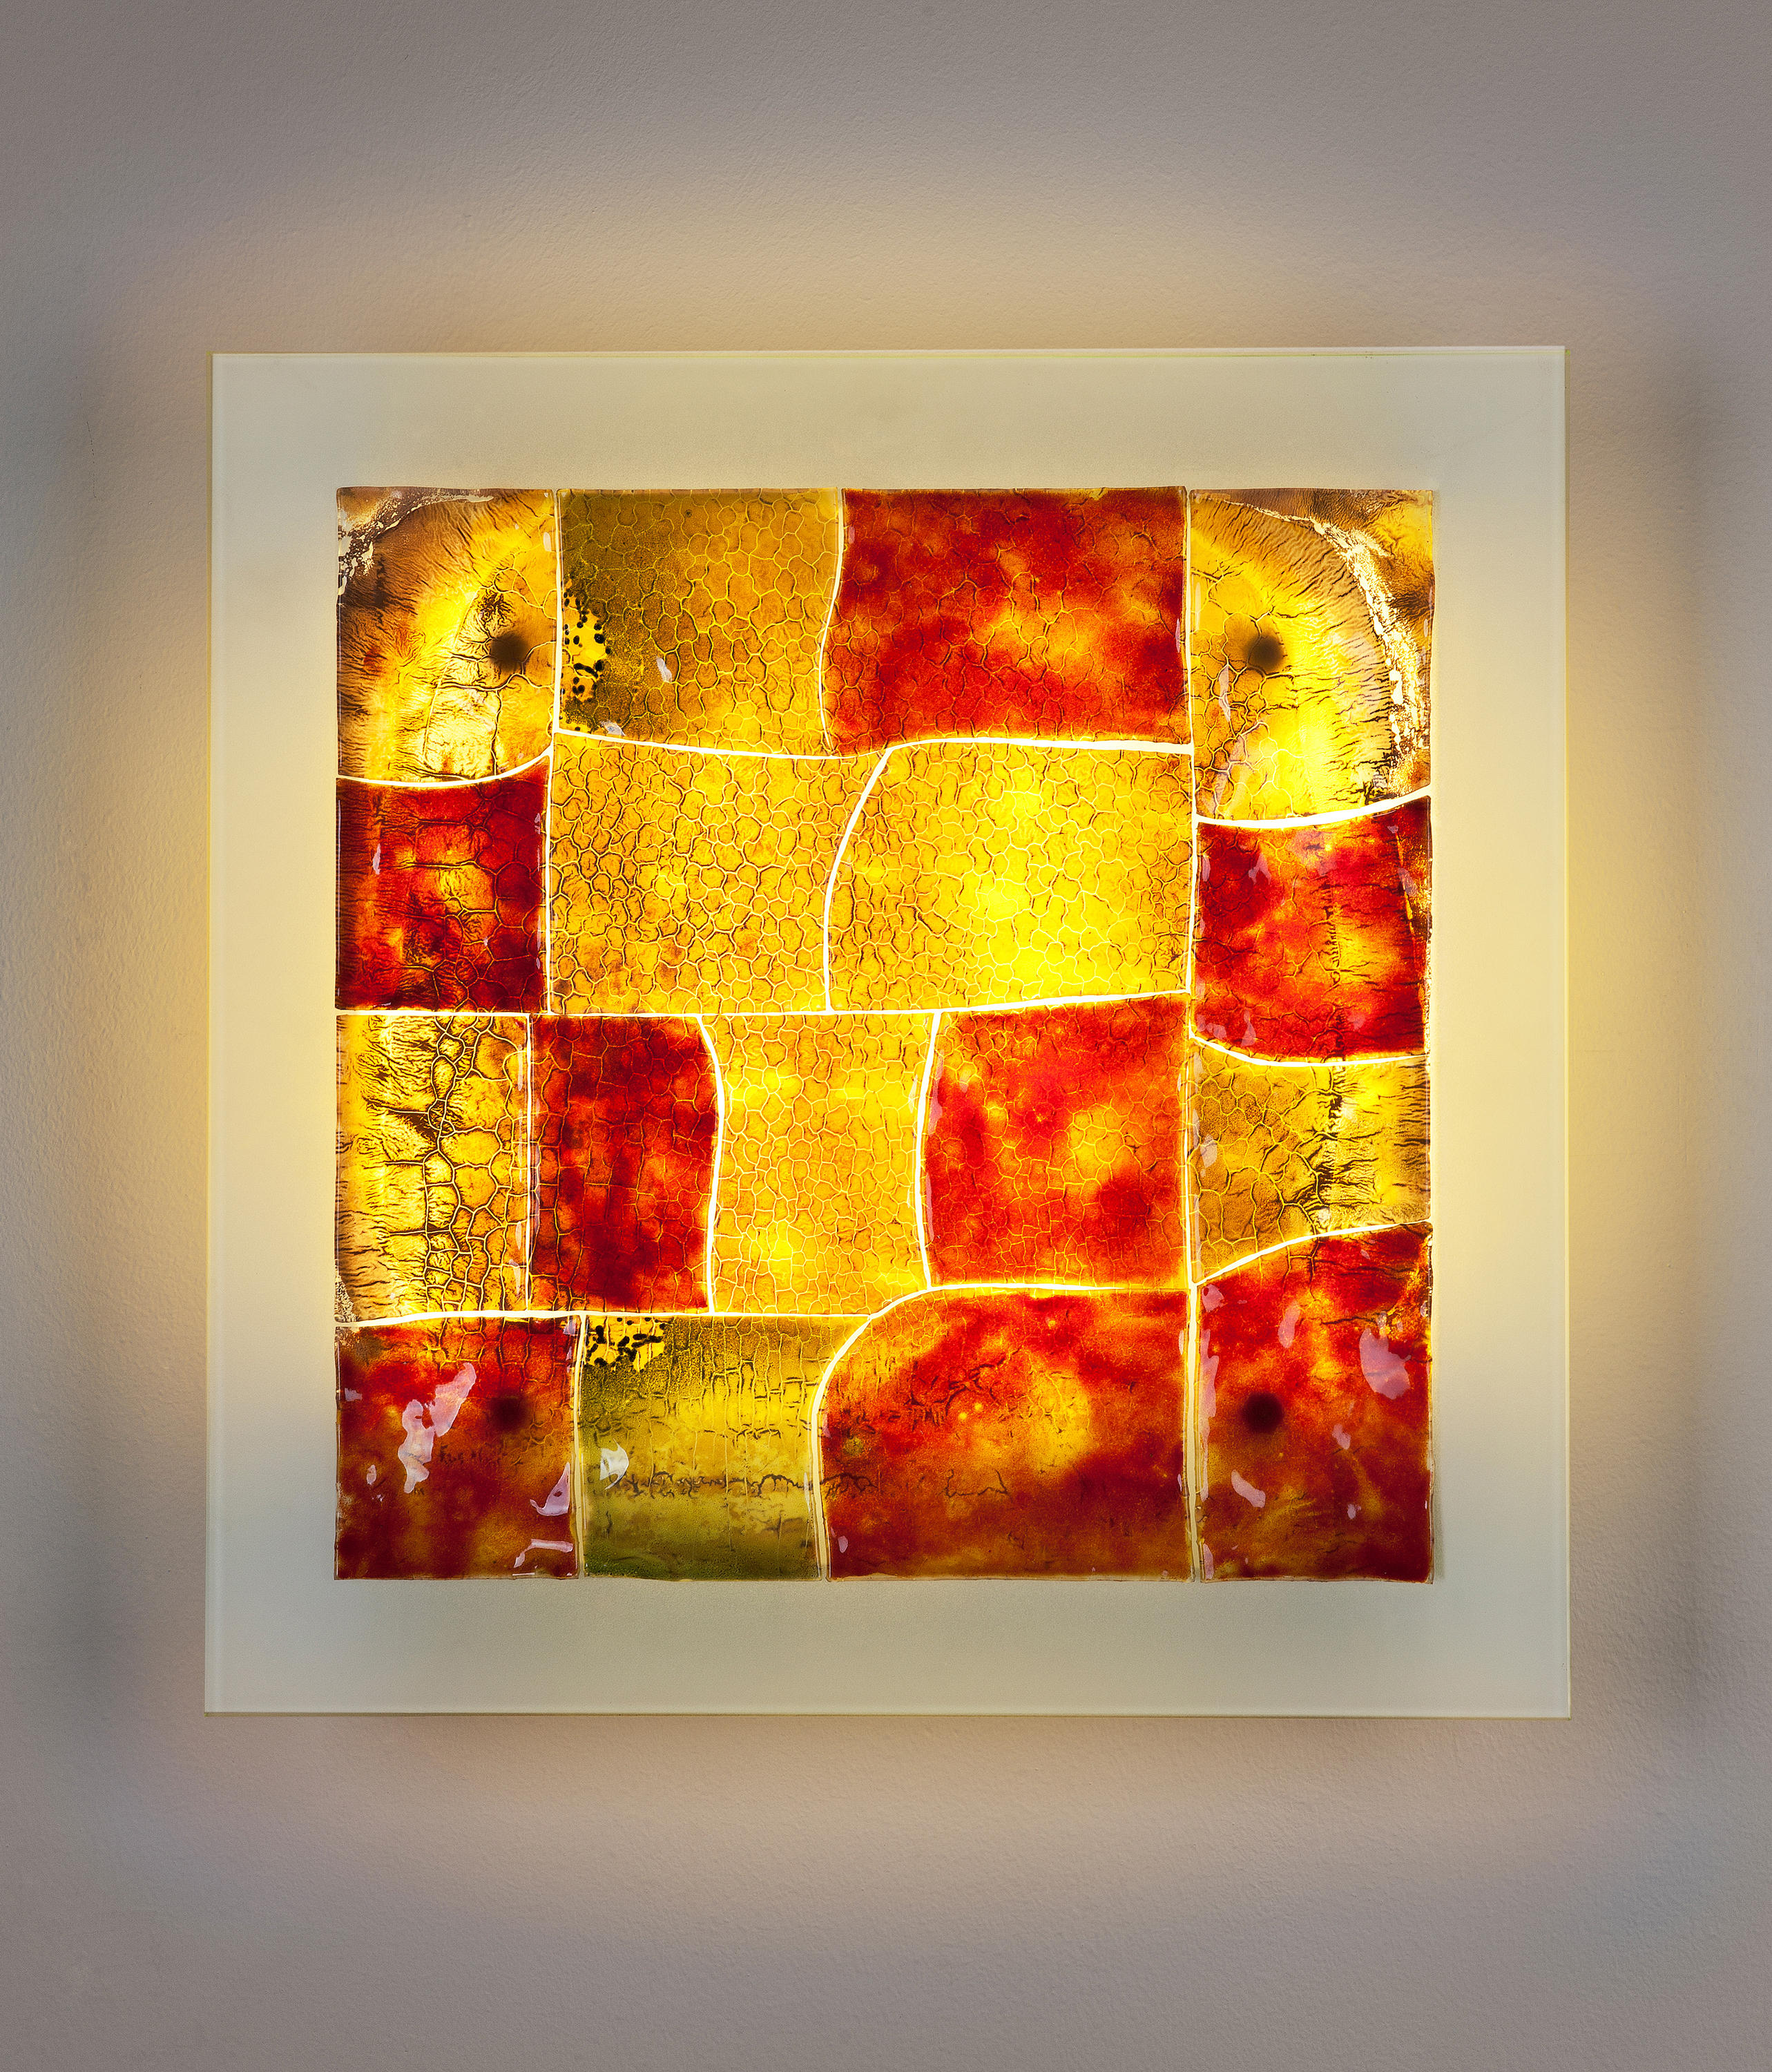 FUSED GLASS LIGHTBOX - General lighting from Shakuff | Architonic